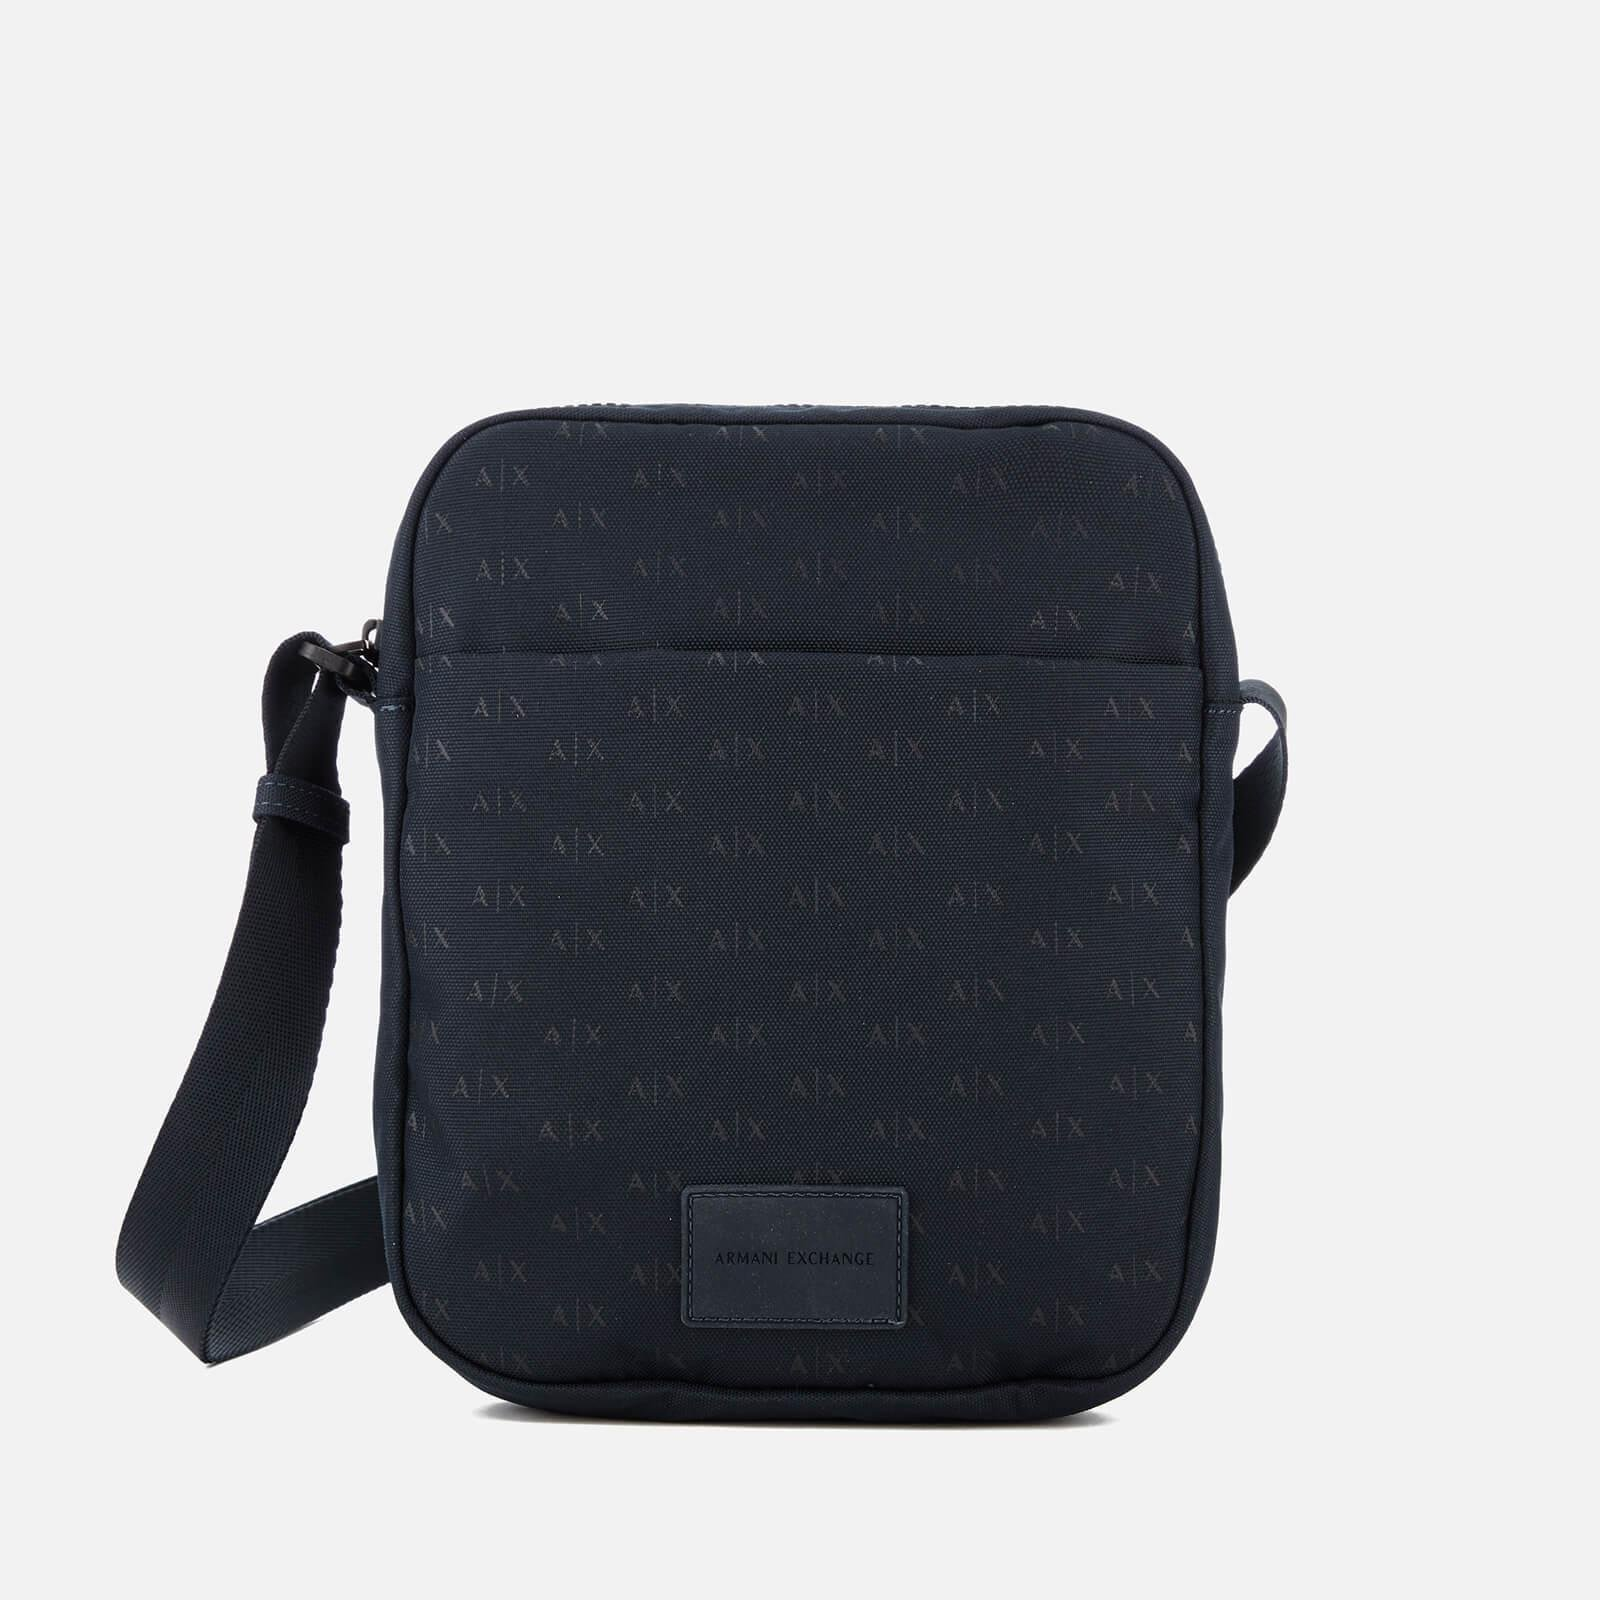 1a08a794b603 Lyst - Armani Exchange Ax All Over Logo Cross Body Bag in Blue for Men